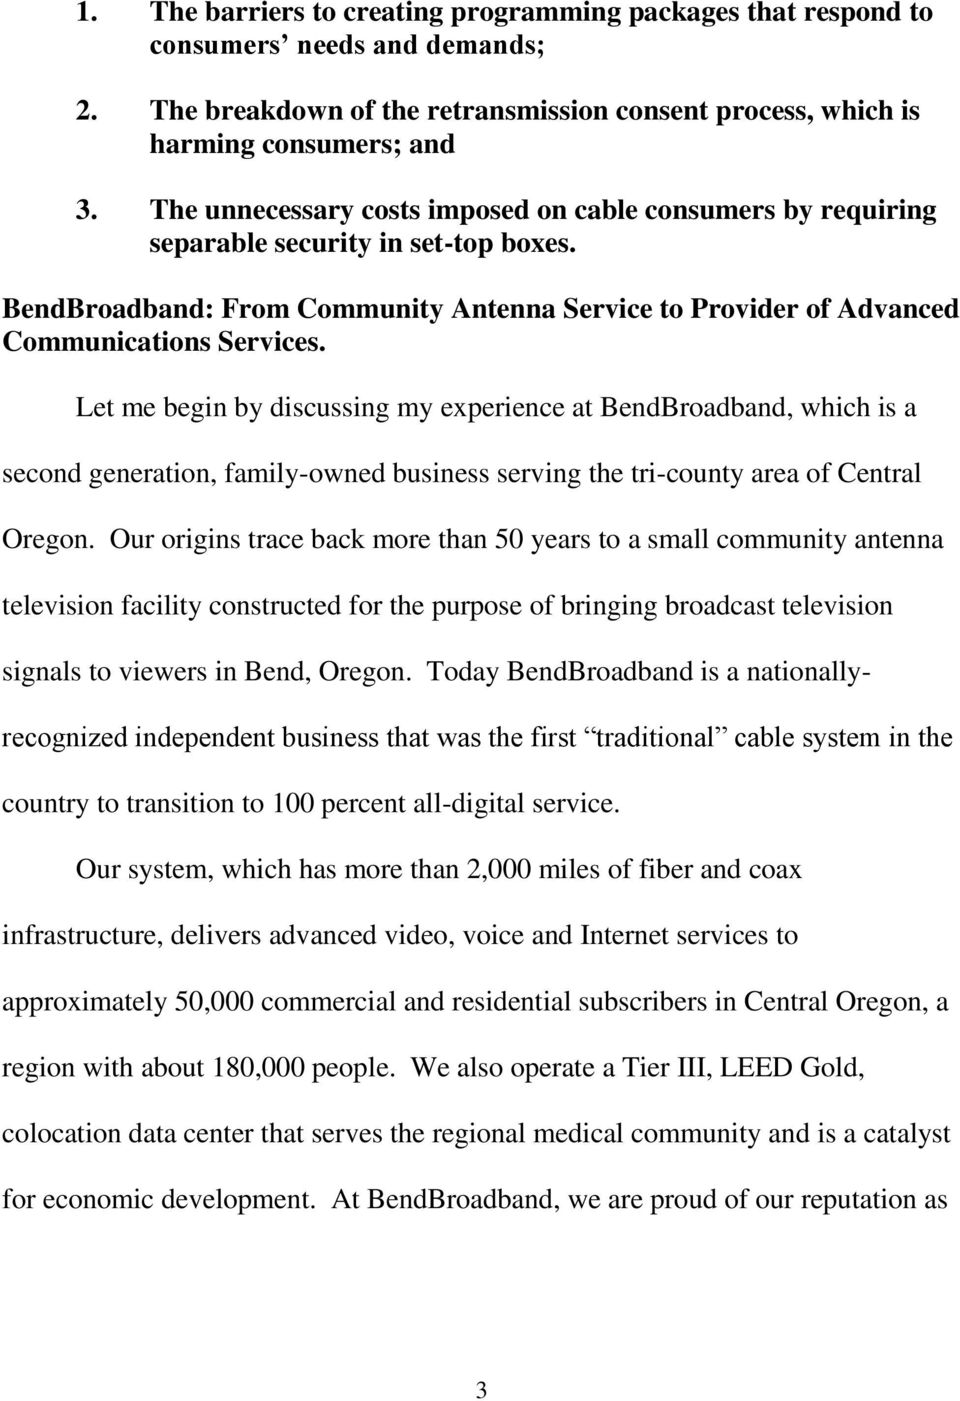 Let me begin by discussing my experience at BendBroadband, which is a second generation, family-owned business serving the tri-county area of Central Oregon.